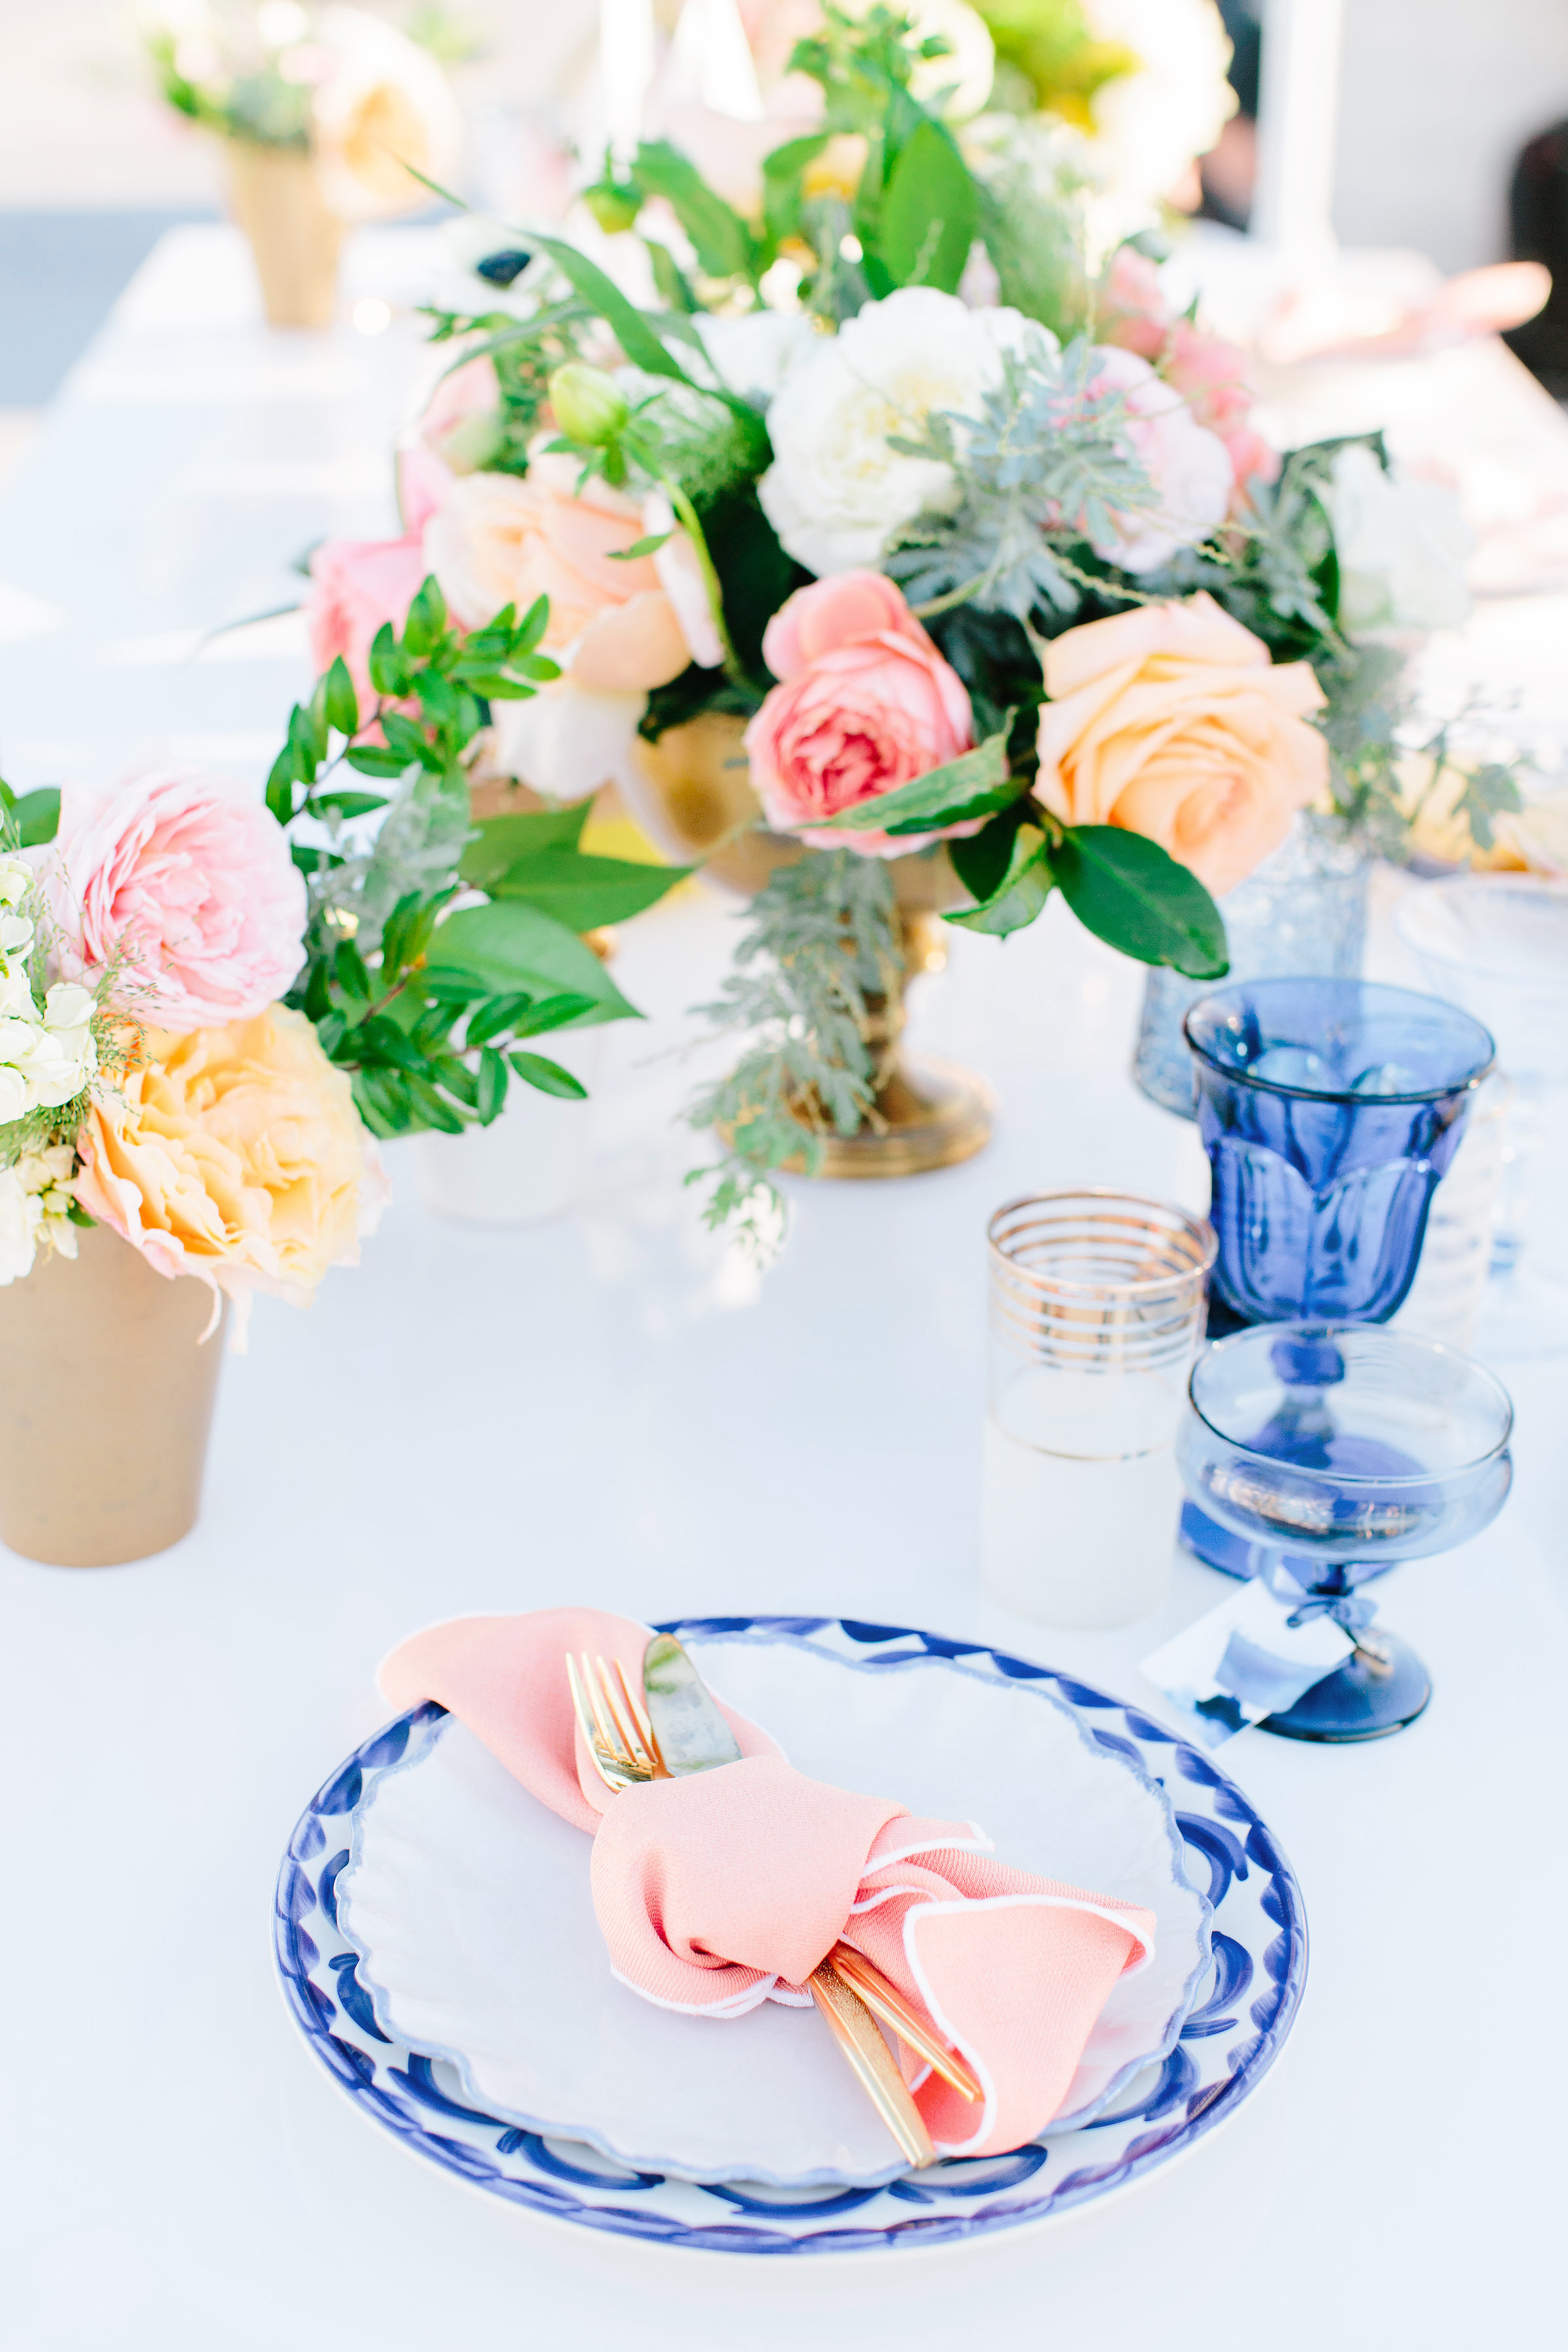 julie anthony real wedding place setting